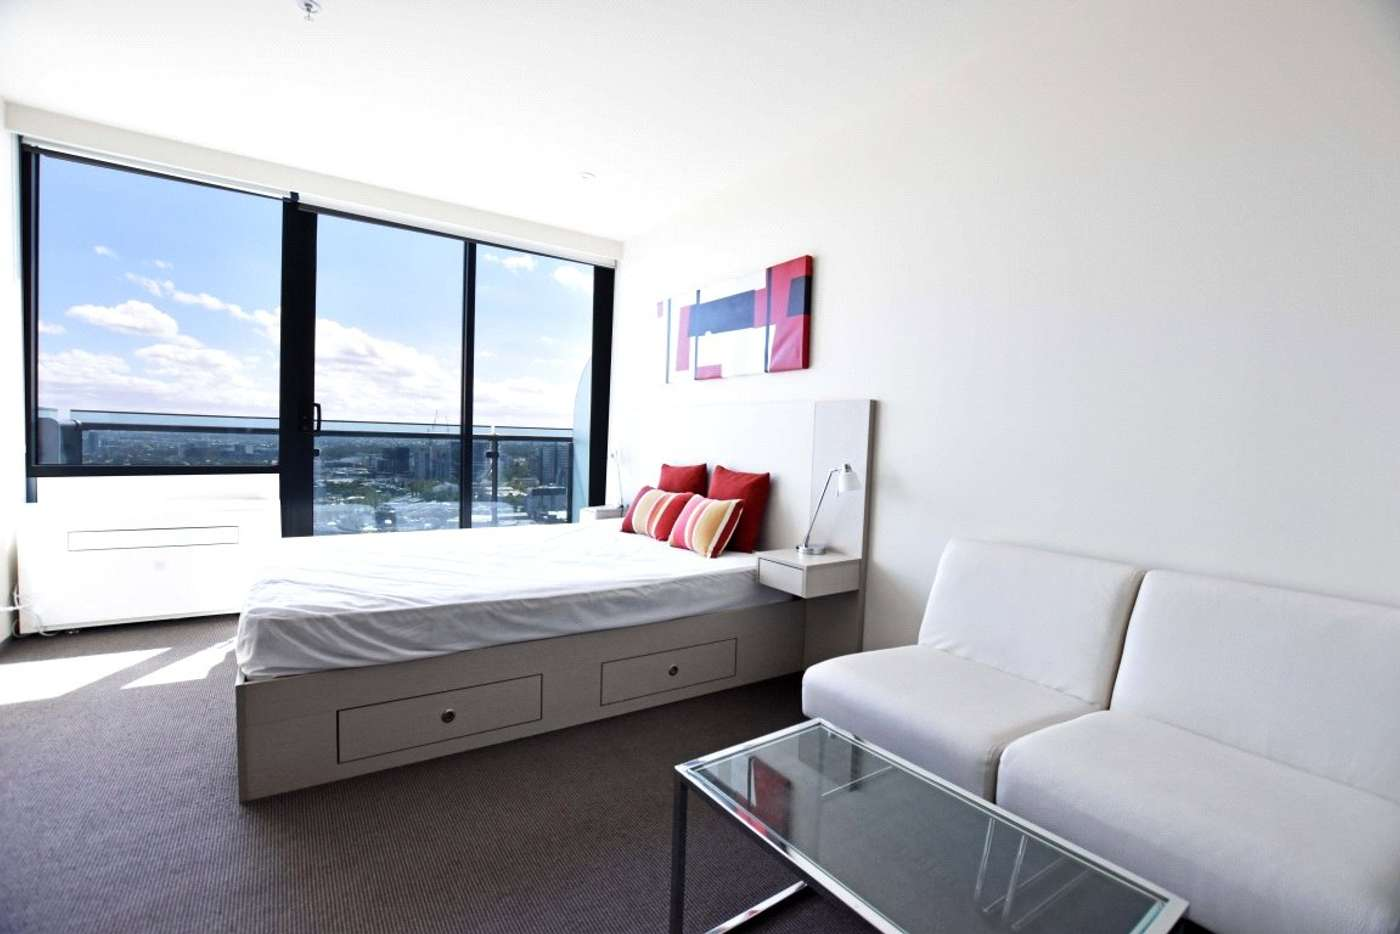 Main view of Homely studio listing, 2803/181 ABeckett Street, Melbourne VIC 3000